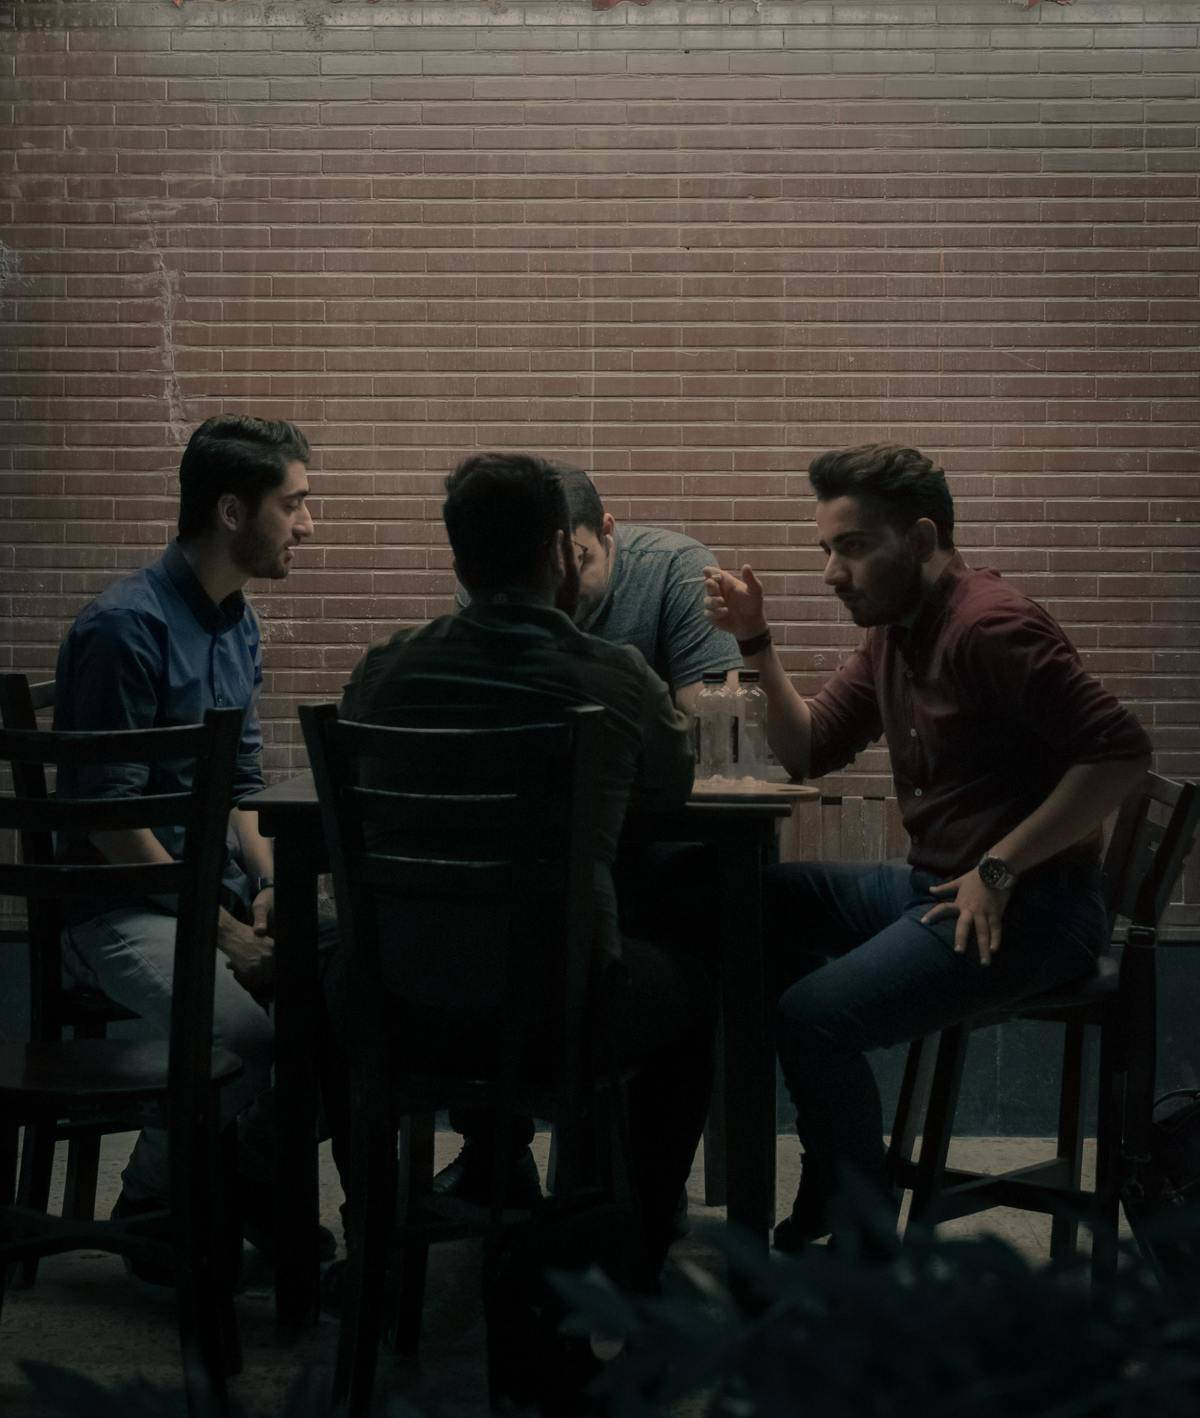 group of men seated at table outside talking at night